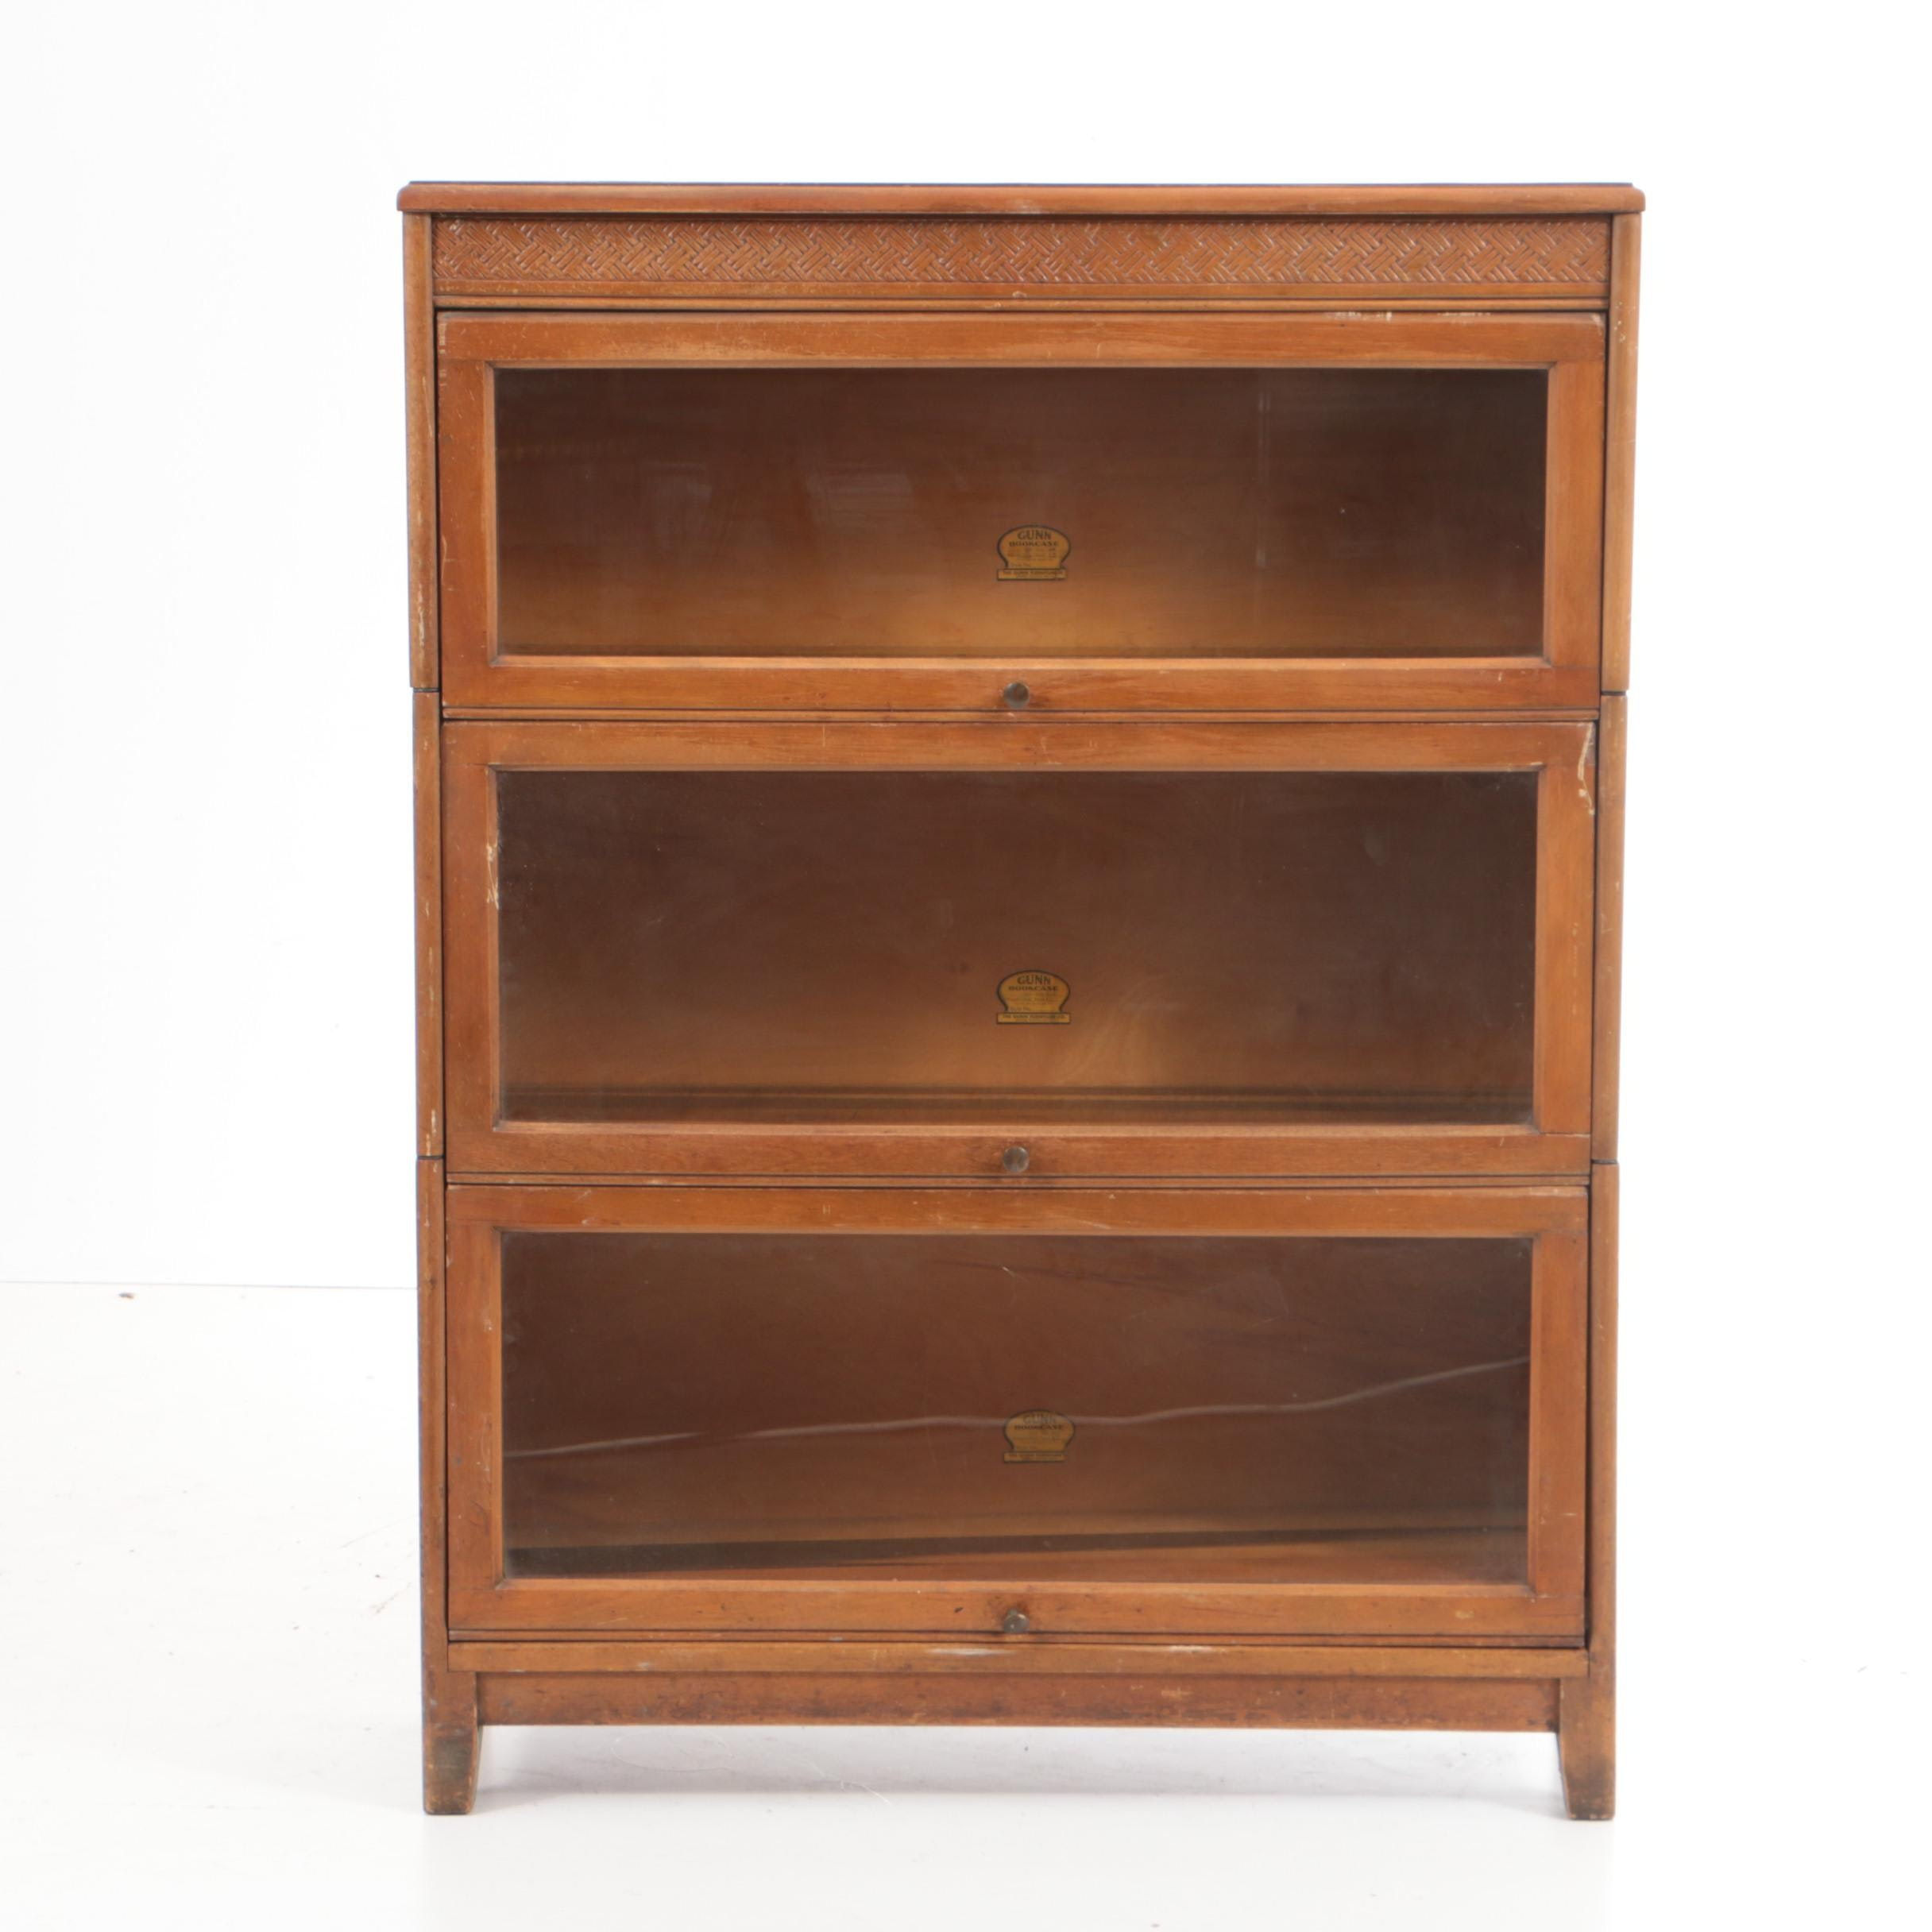 Early 20th Century Three-Stack Barrister's Bookcase by The Gunn Furniture Co.